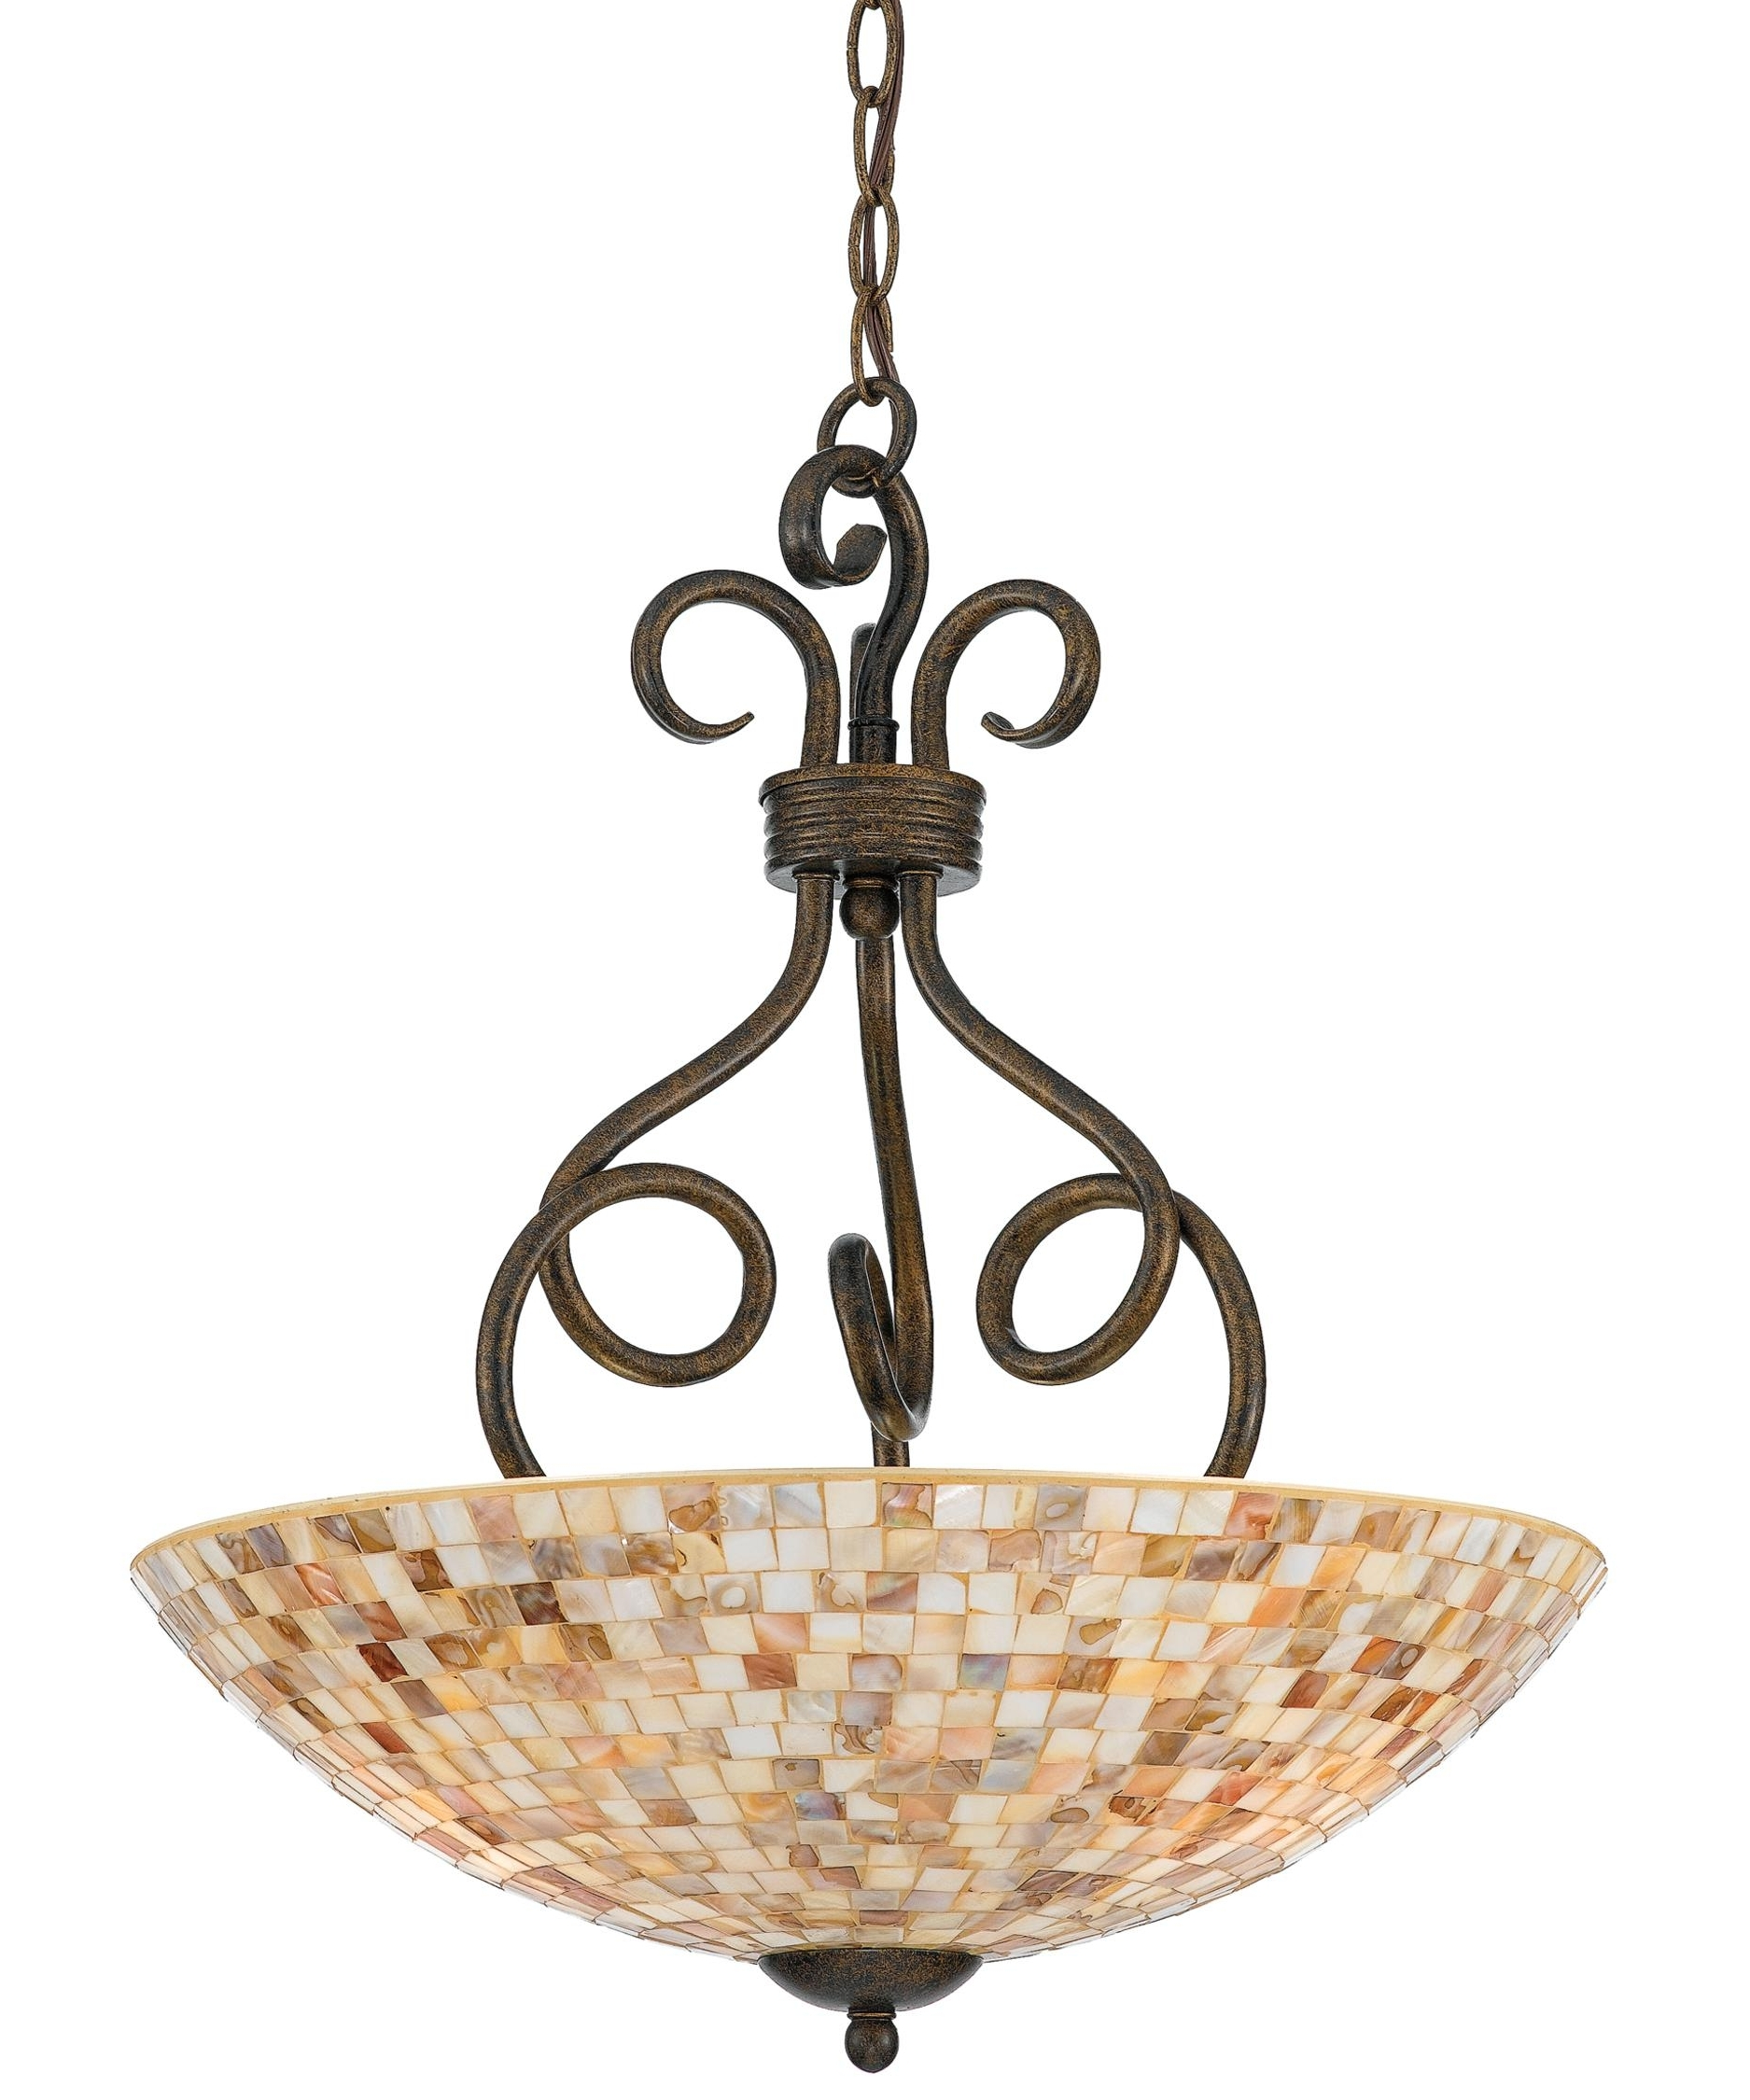 Light : Awesome Quoizel Monterey Mosaic Inch Large Pendant For Chic With Regard To Well Known Inverted Pendant Chandeliers (View 2 of 20)